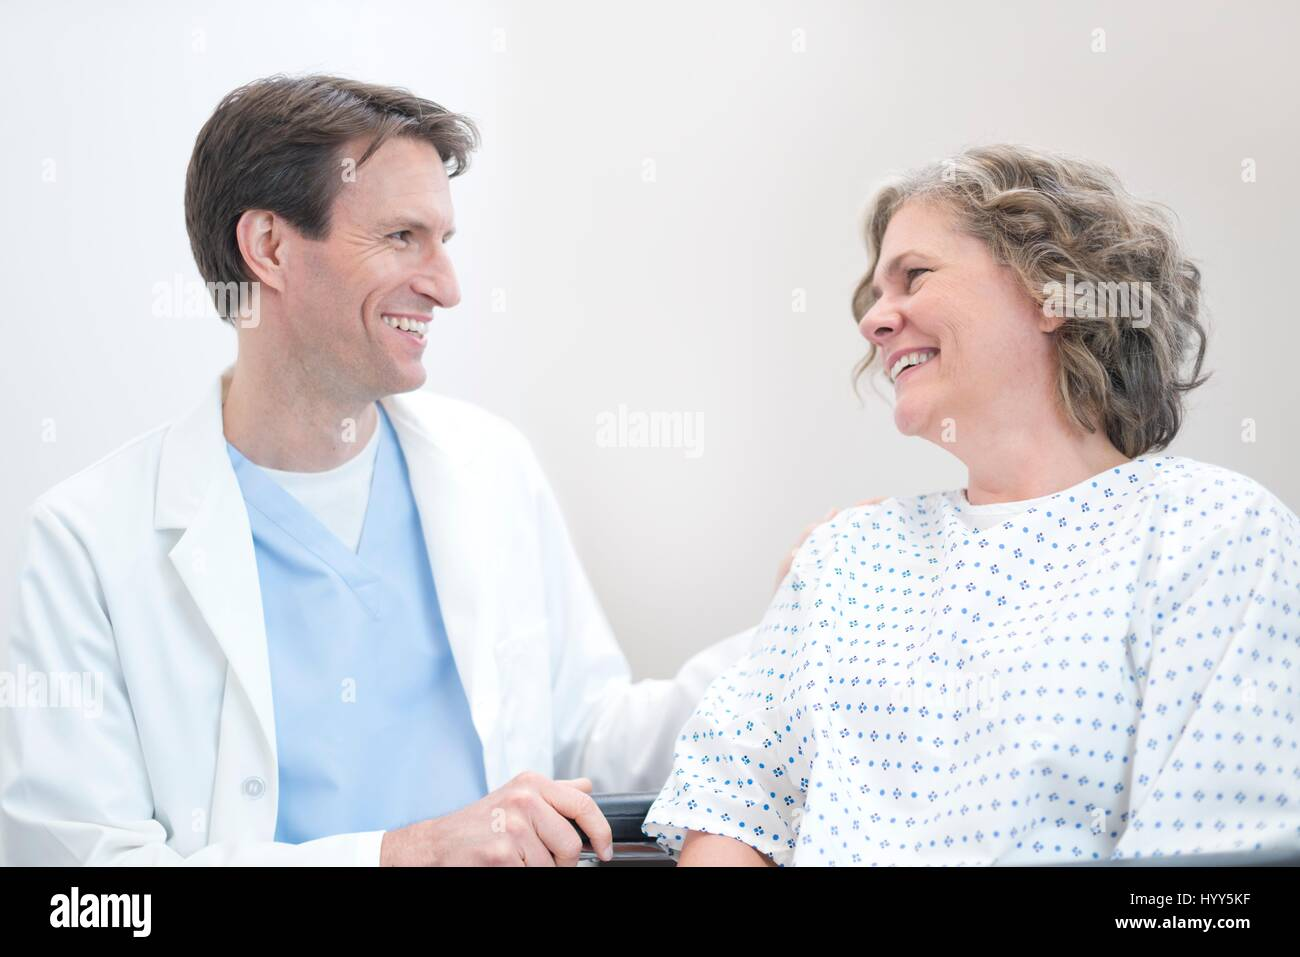 Doctor smiling at mature female patient. Photo Stock